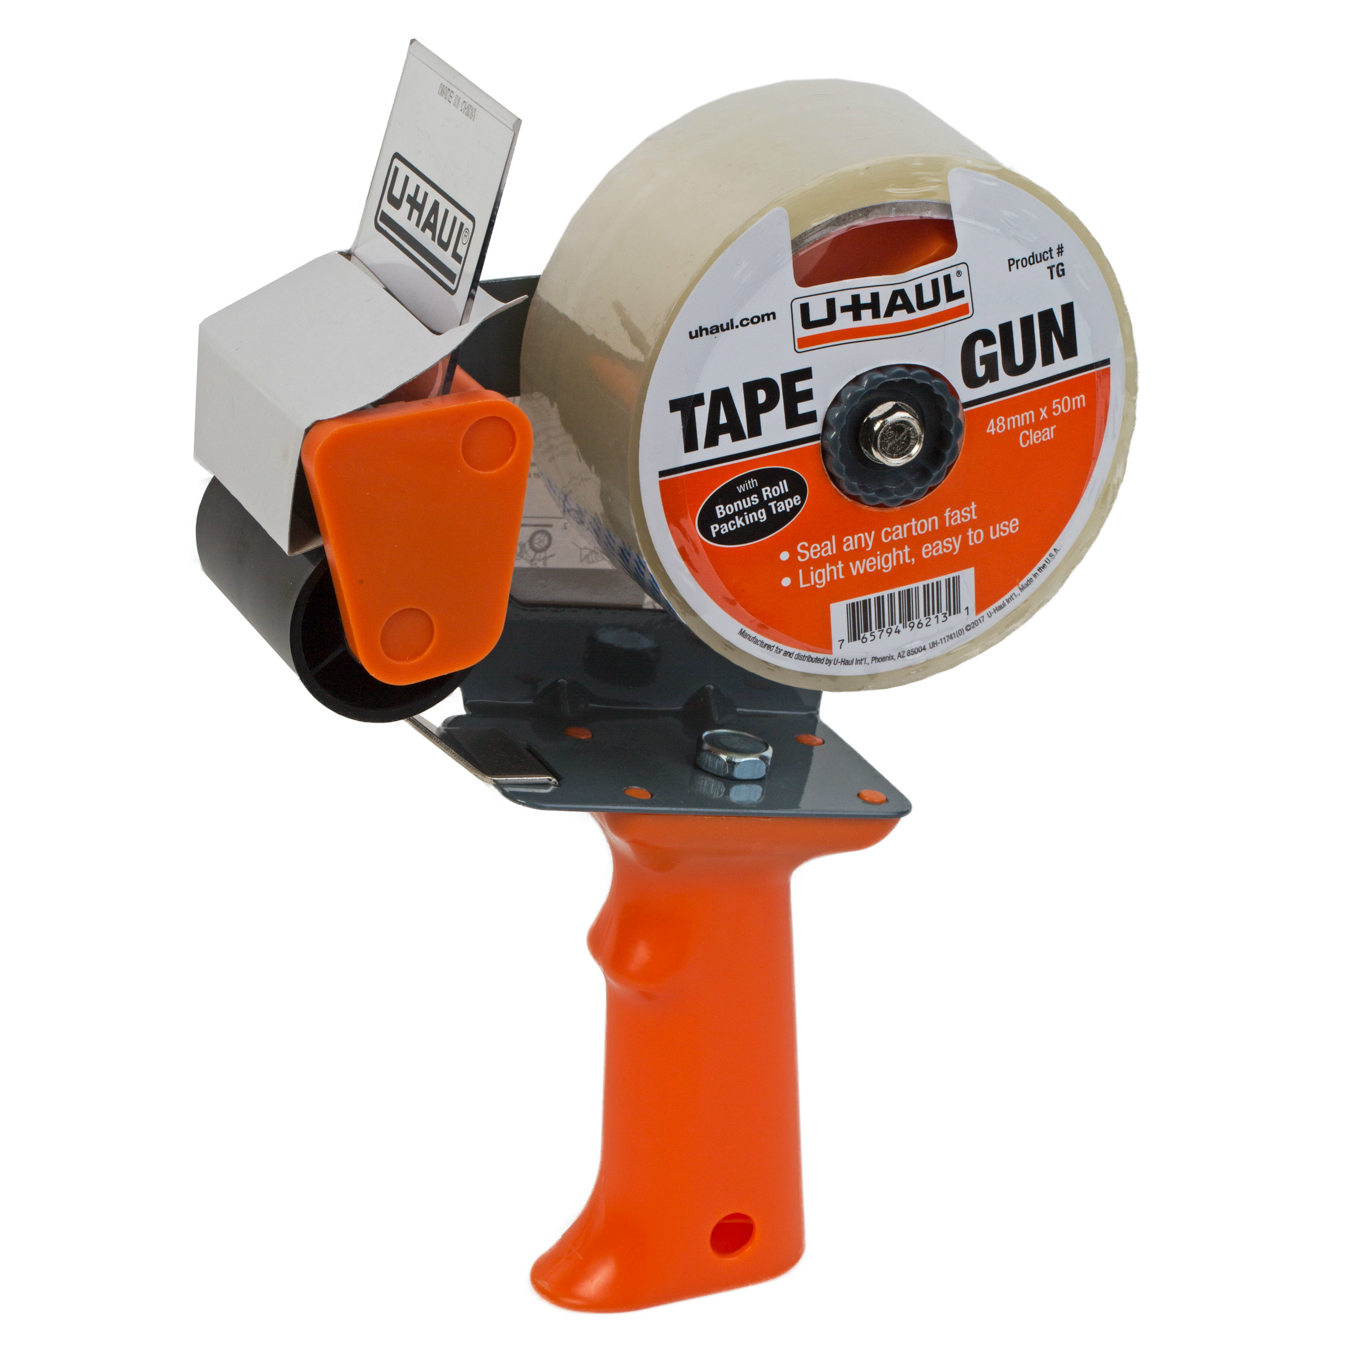 U Haul Tape Gun Dispenser